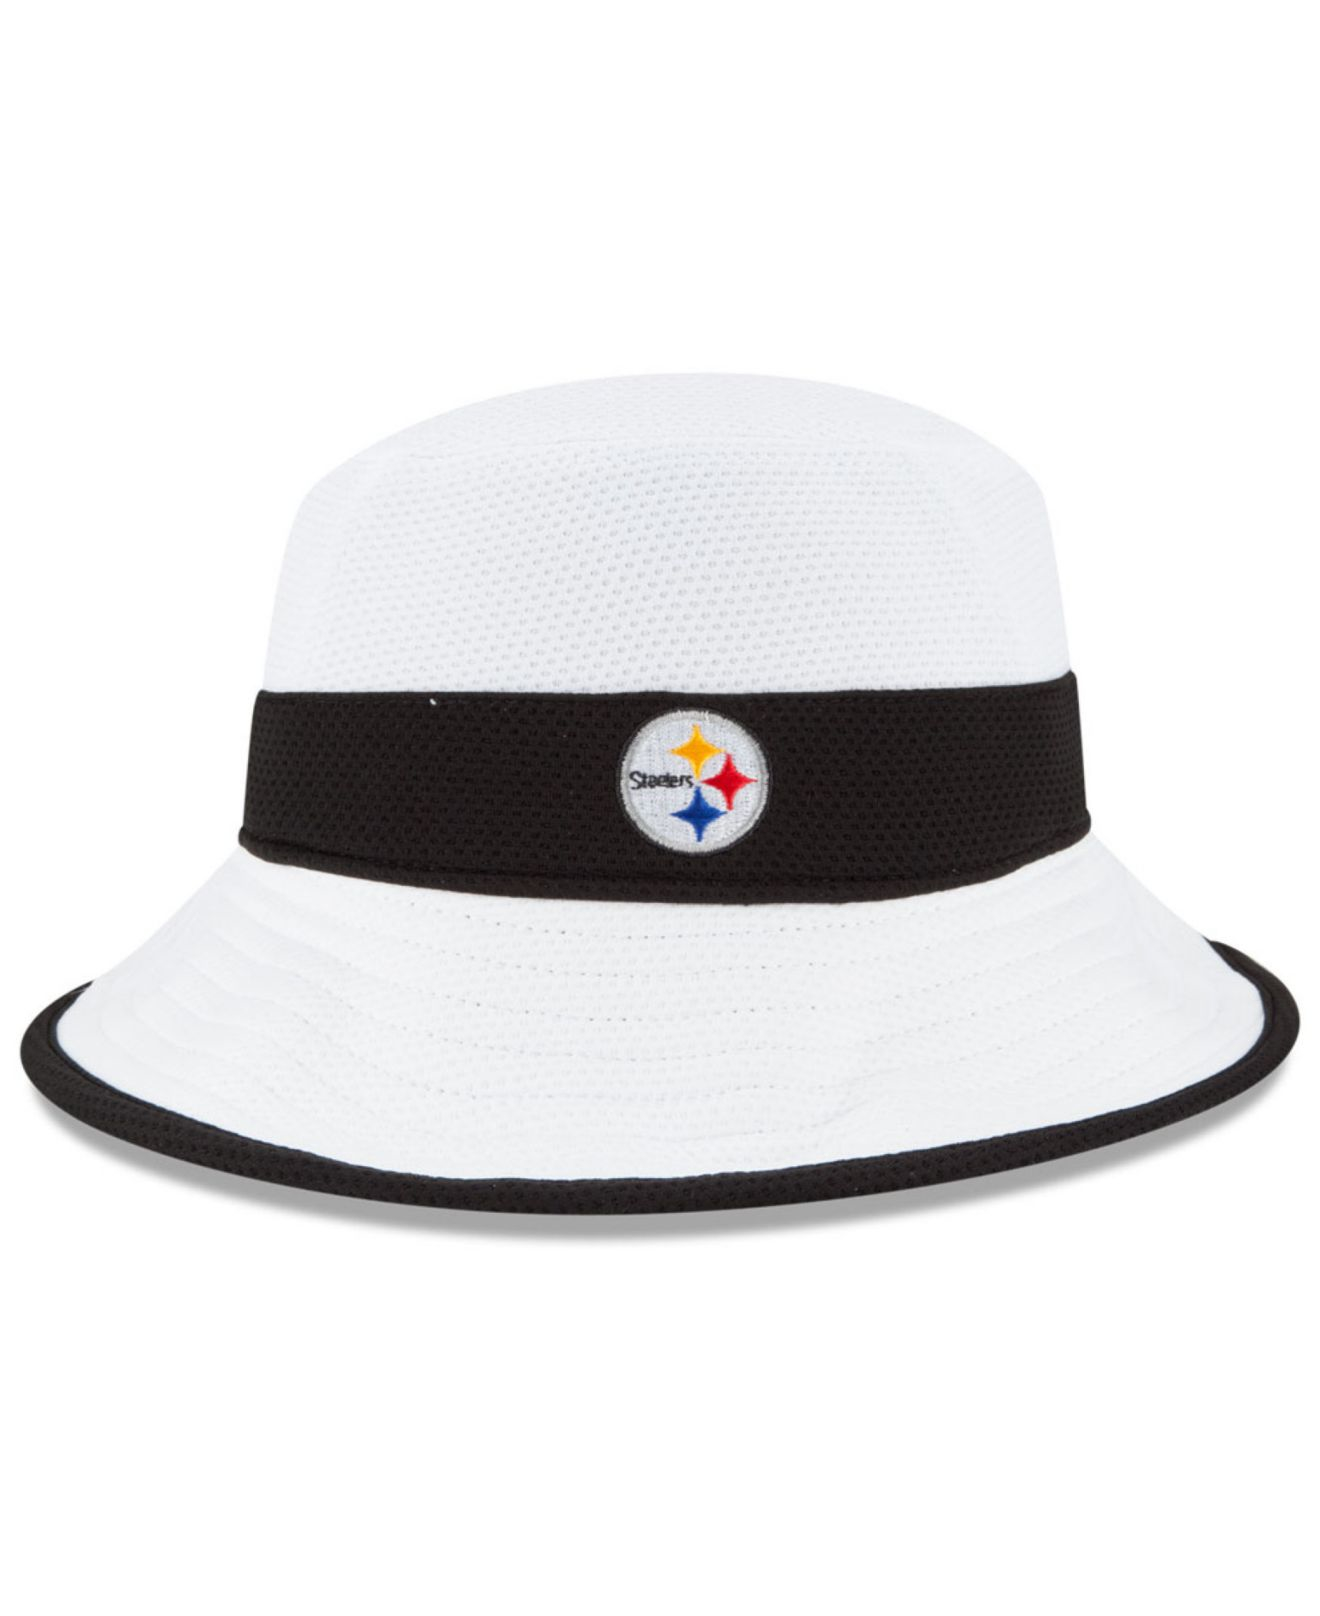 Lyst - KTZ Pittsburgh Steelers Training Camp Official Bucket Hat in ... f506fb328b6e